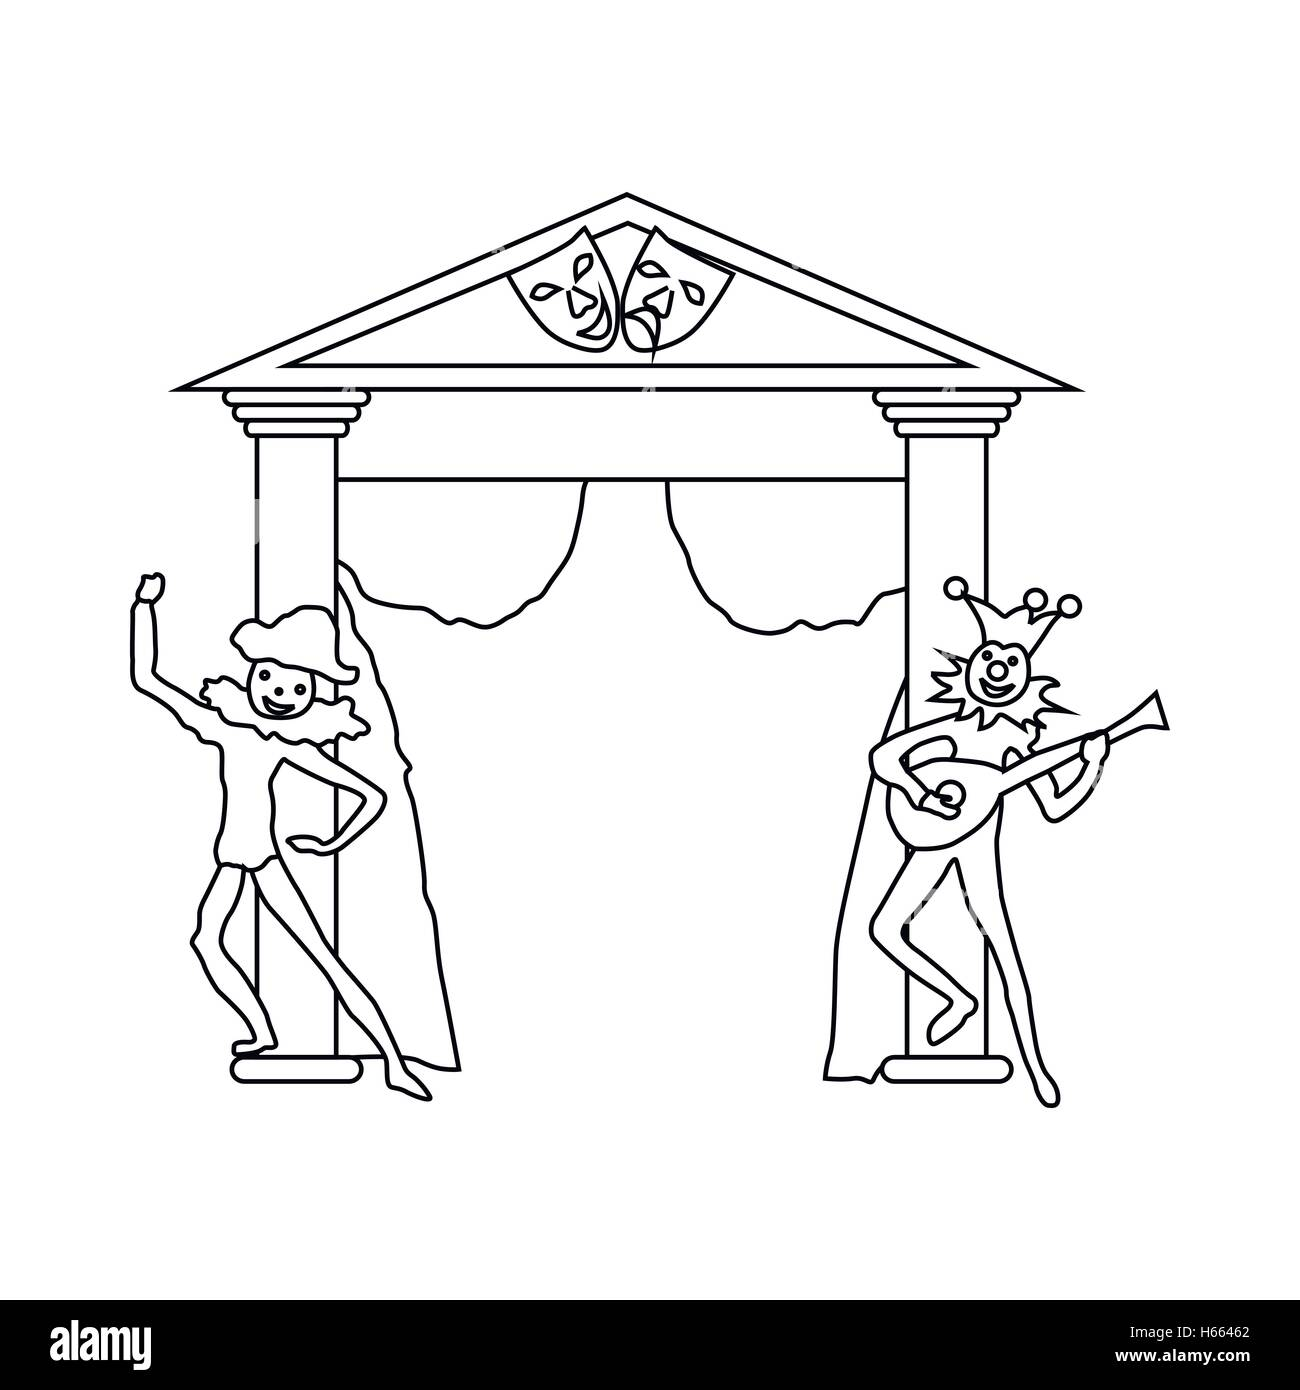 Theater stage with open curtains and actors icon - Stock Vector